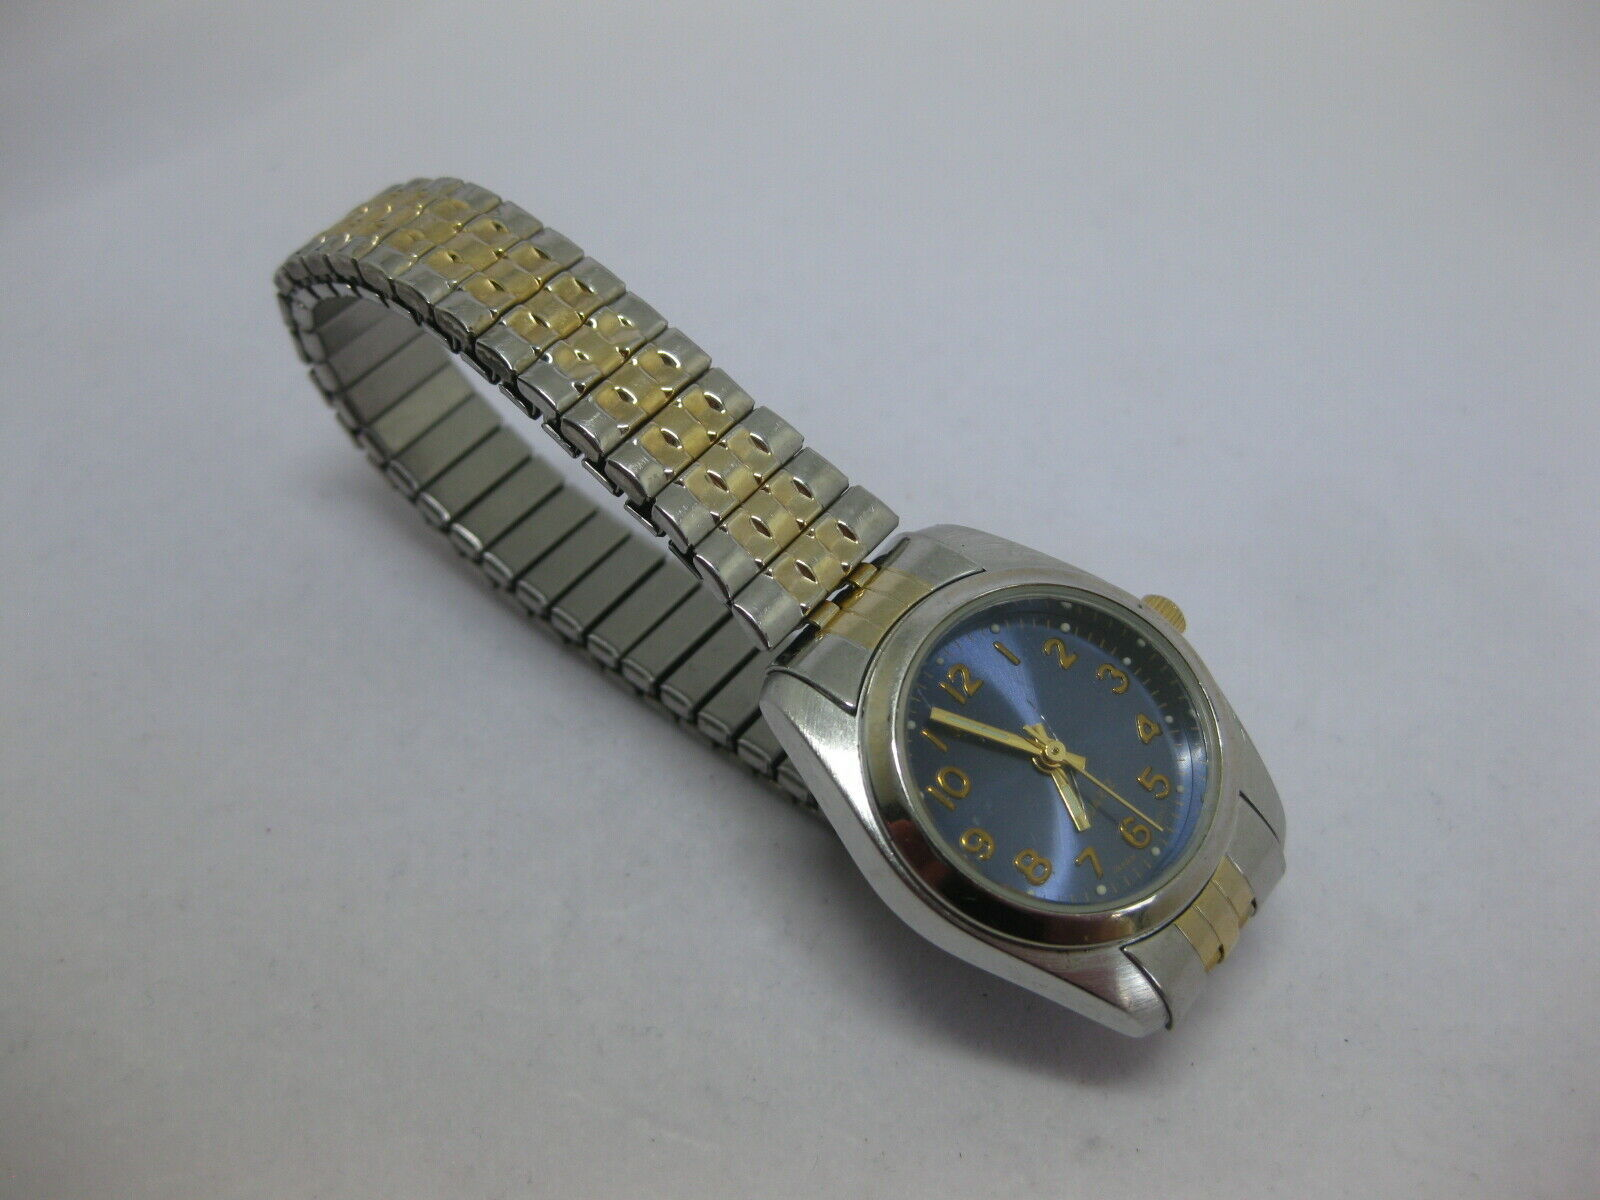 Primary image for Vintage White Stag Men's Flex Stretch Band Watch Gold Silver Tone WORKS WS50702W